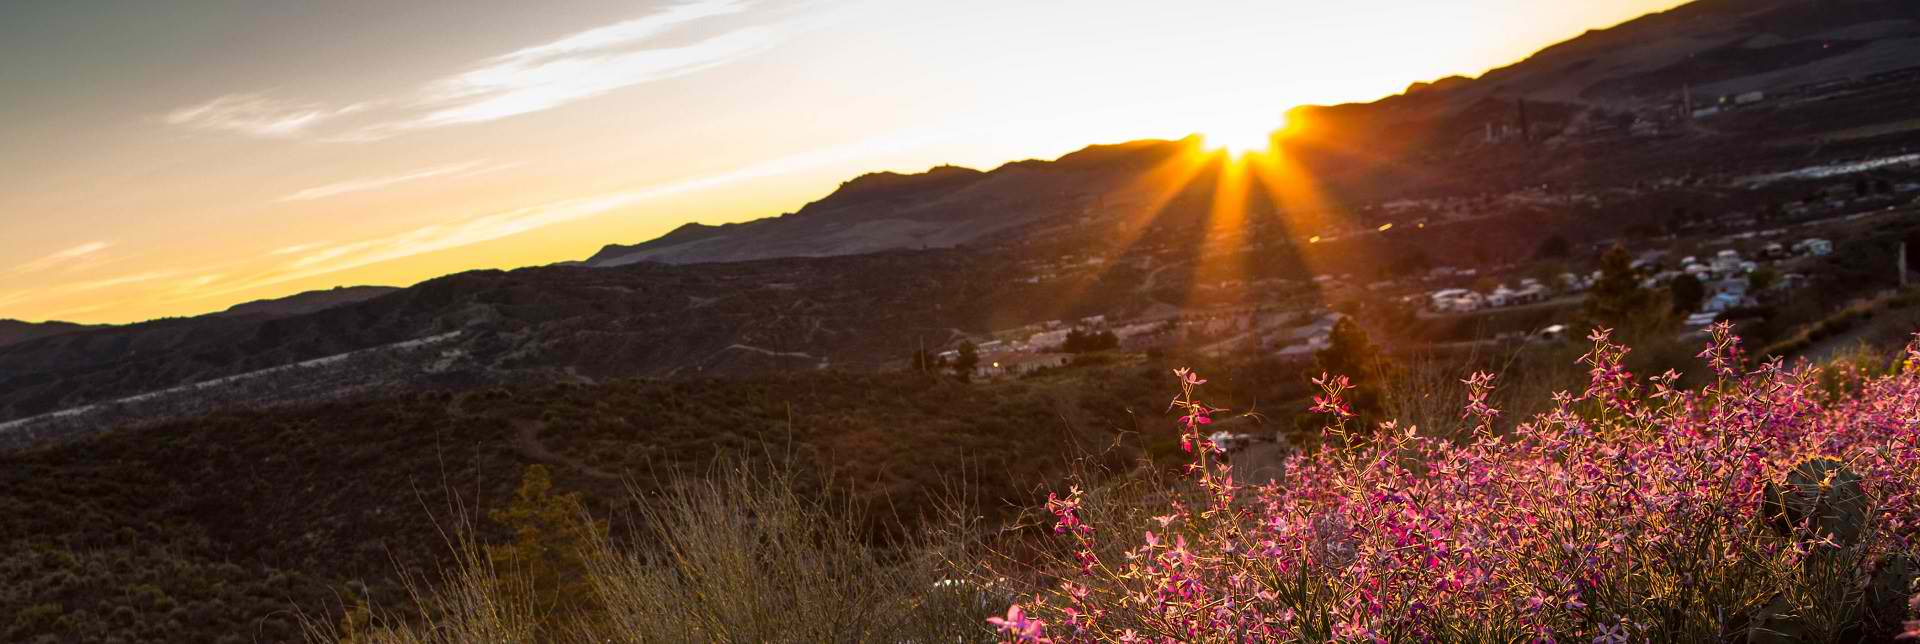 Arizona Sunset Pest Control Solutions